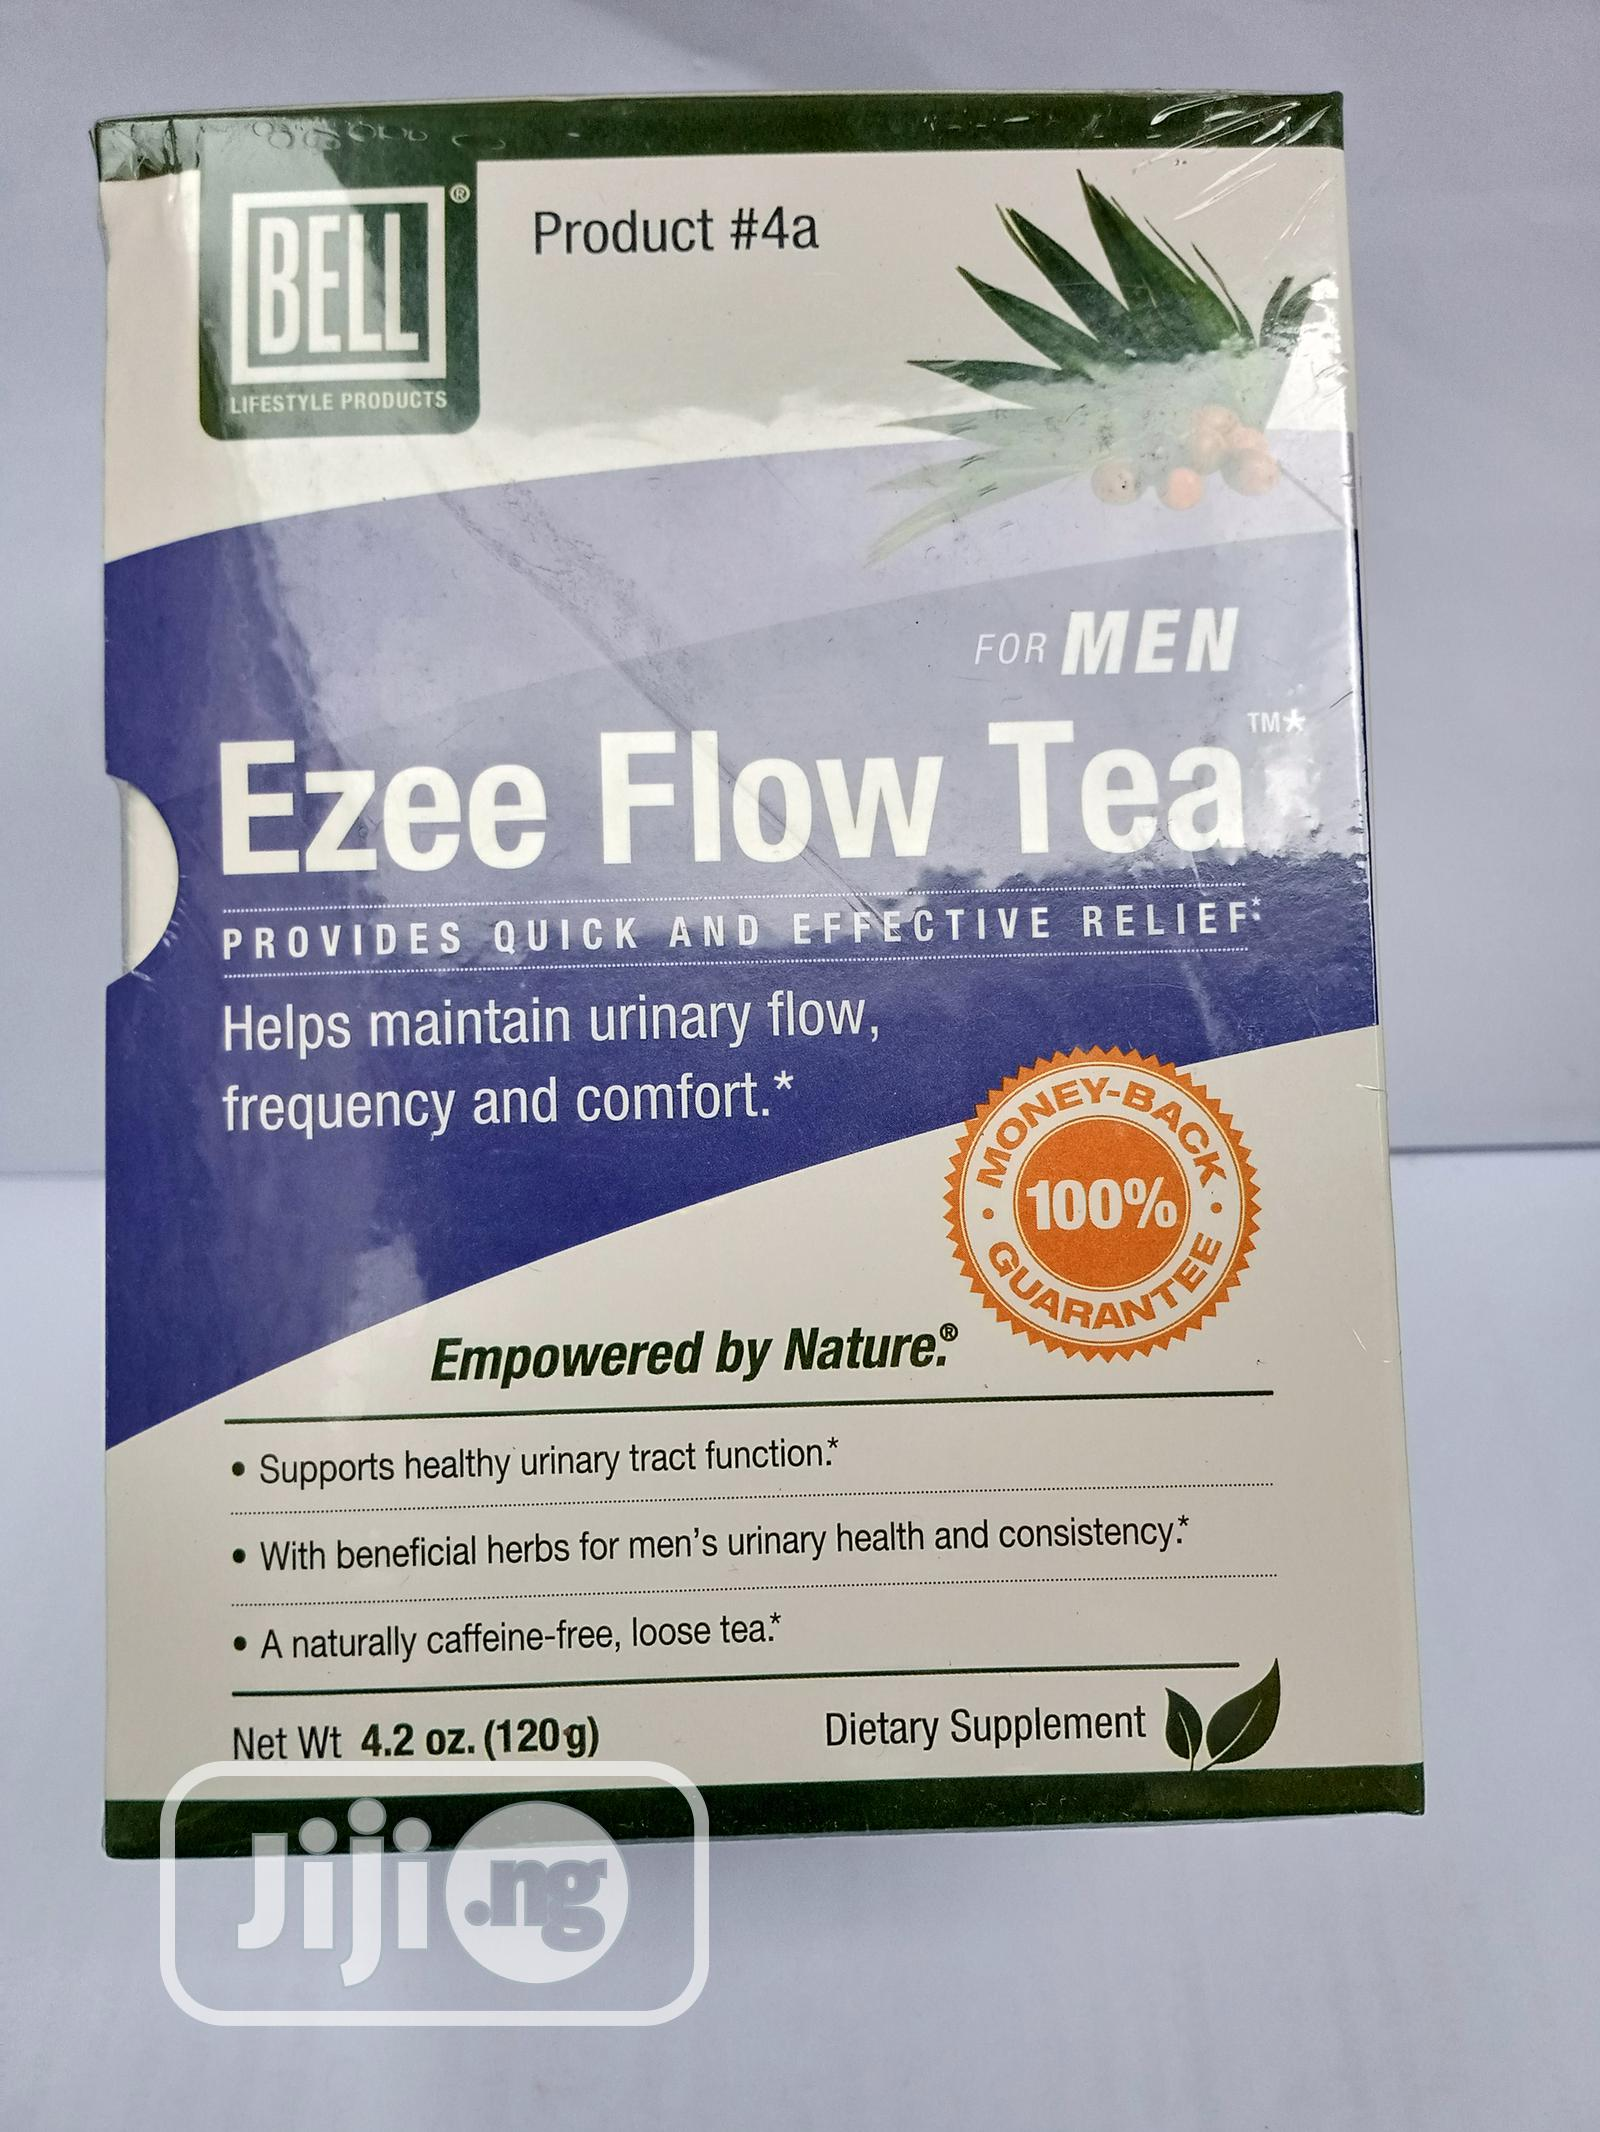 Treat Prostate Enlargement and Cancer With Bell Eazea Flow Tea